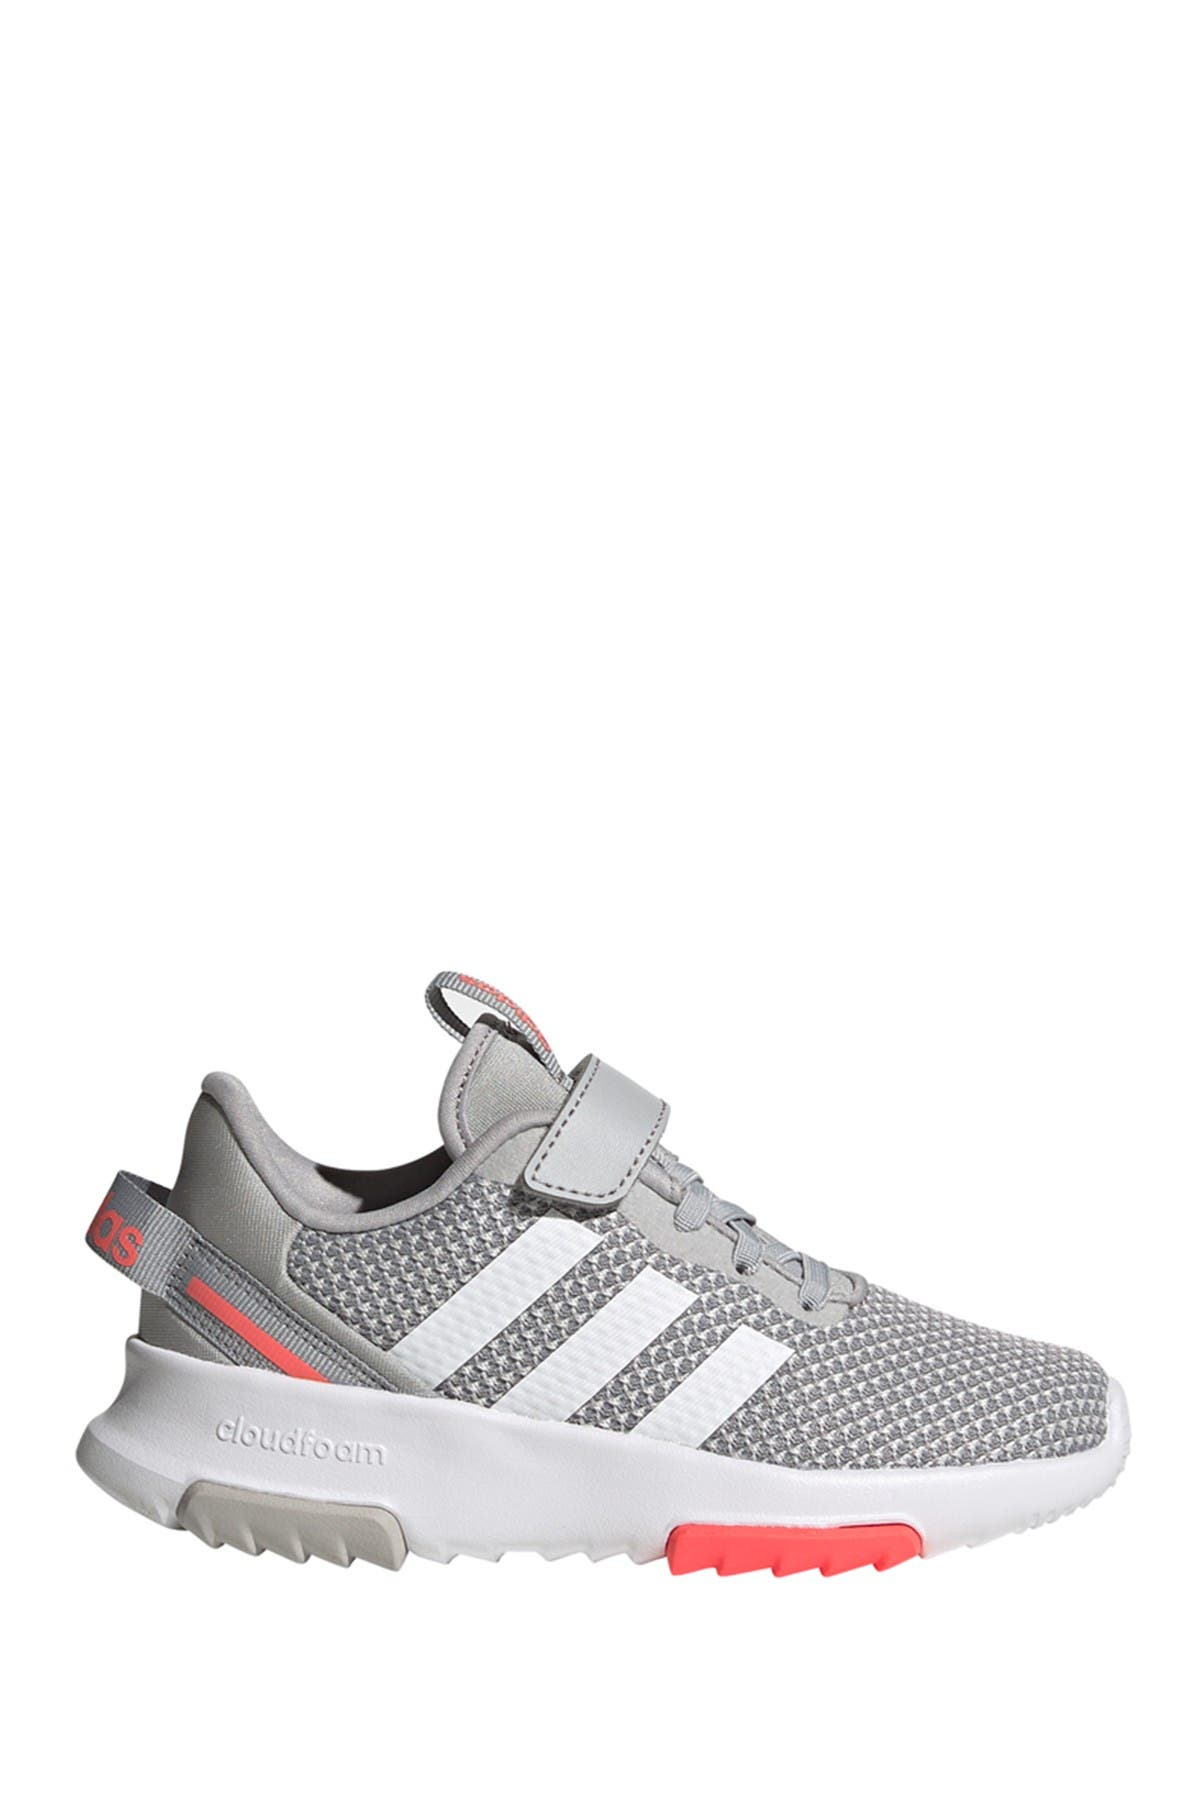 Image of adidas Racer TR 2.0 Sneaker